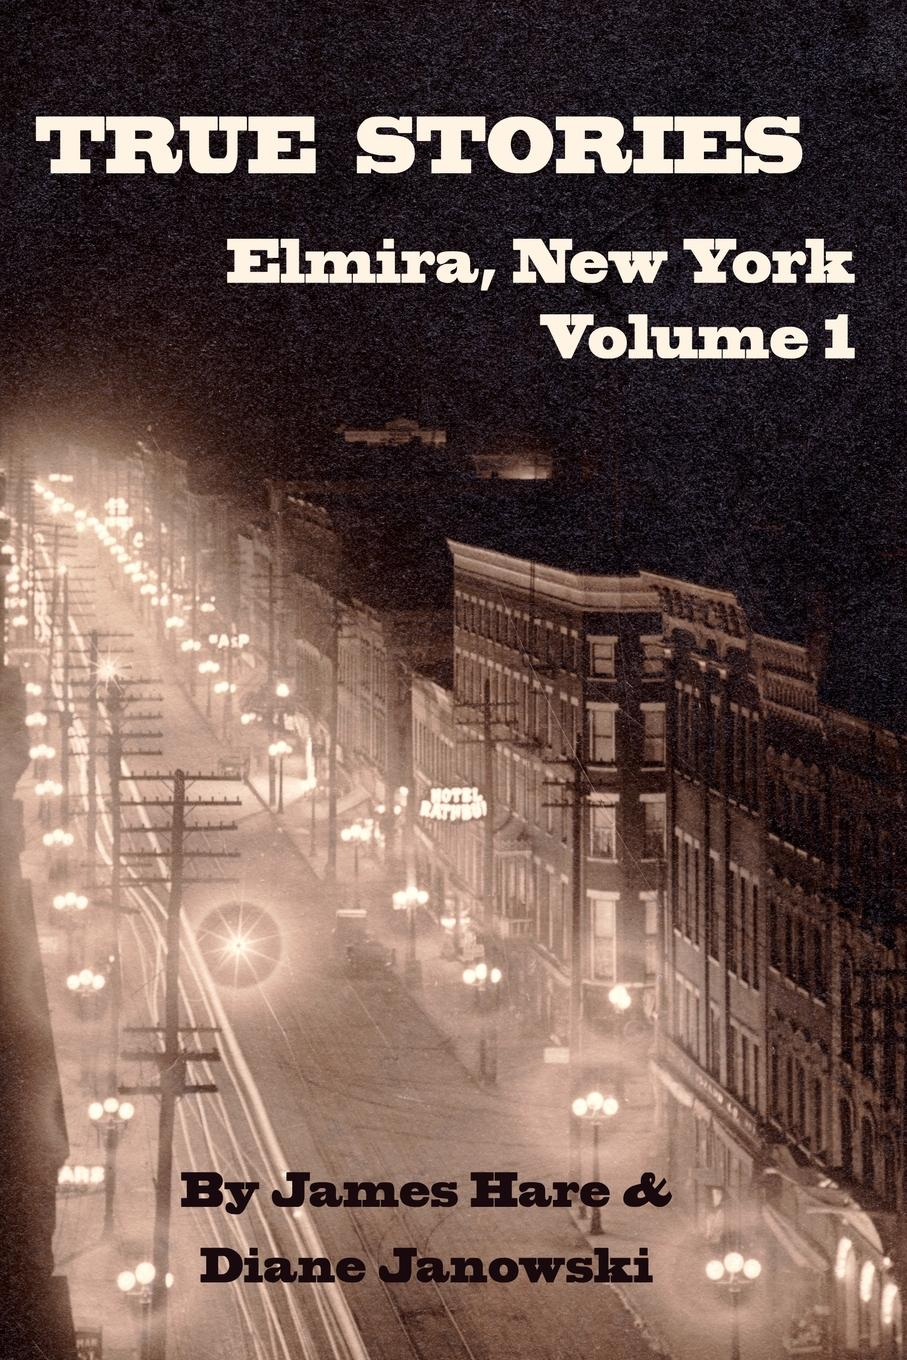 James Hare, Diane Janowski True Stories of Elmira, New York Volume 1 the hare and the tortoise reissue